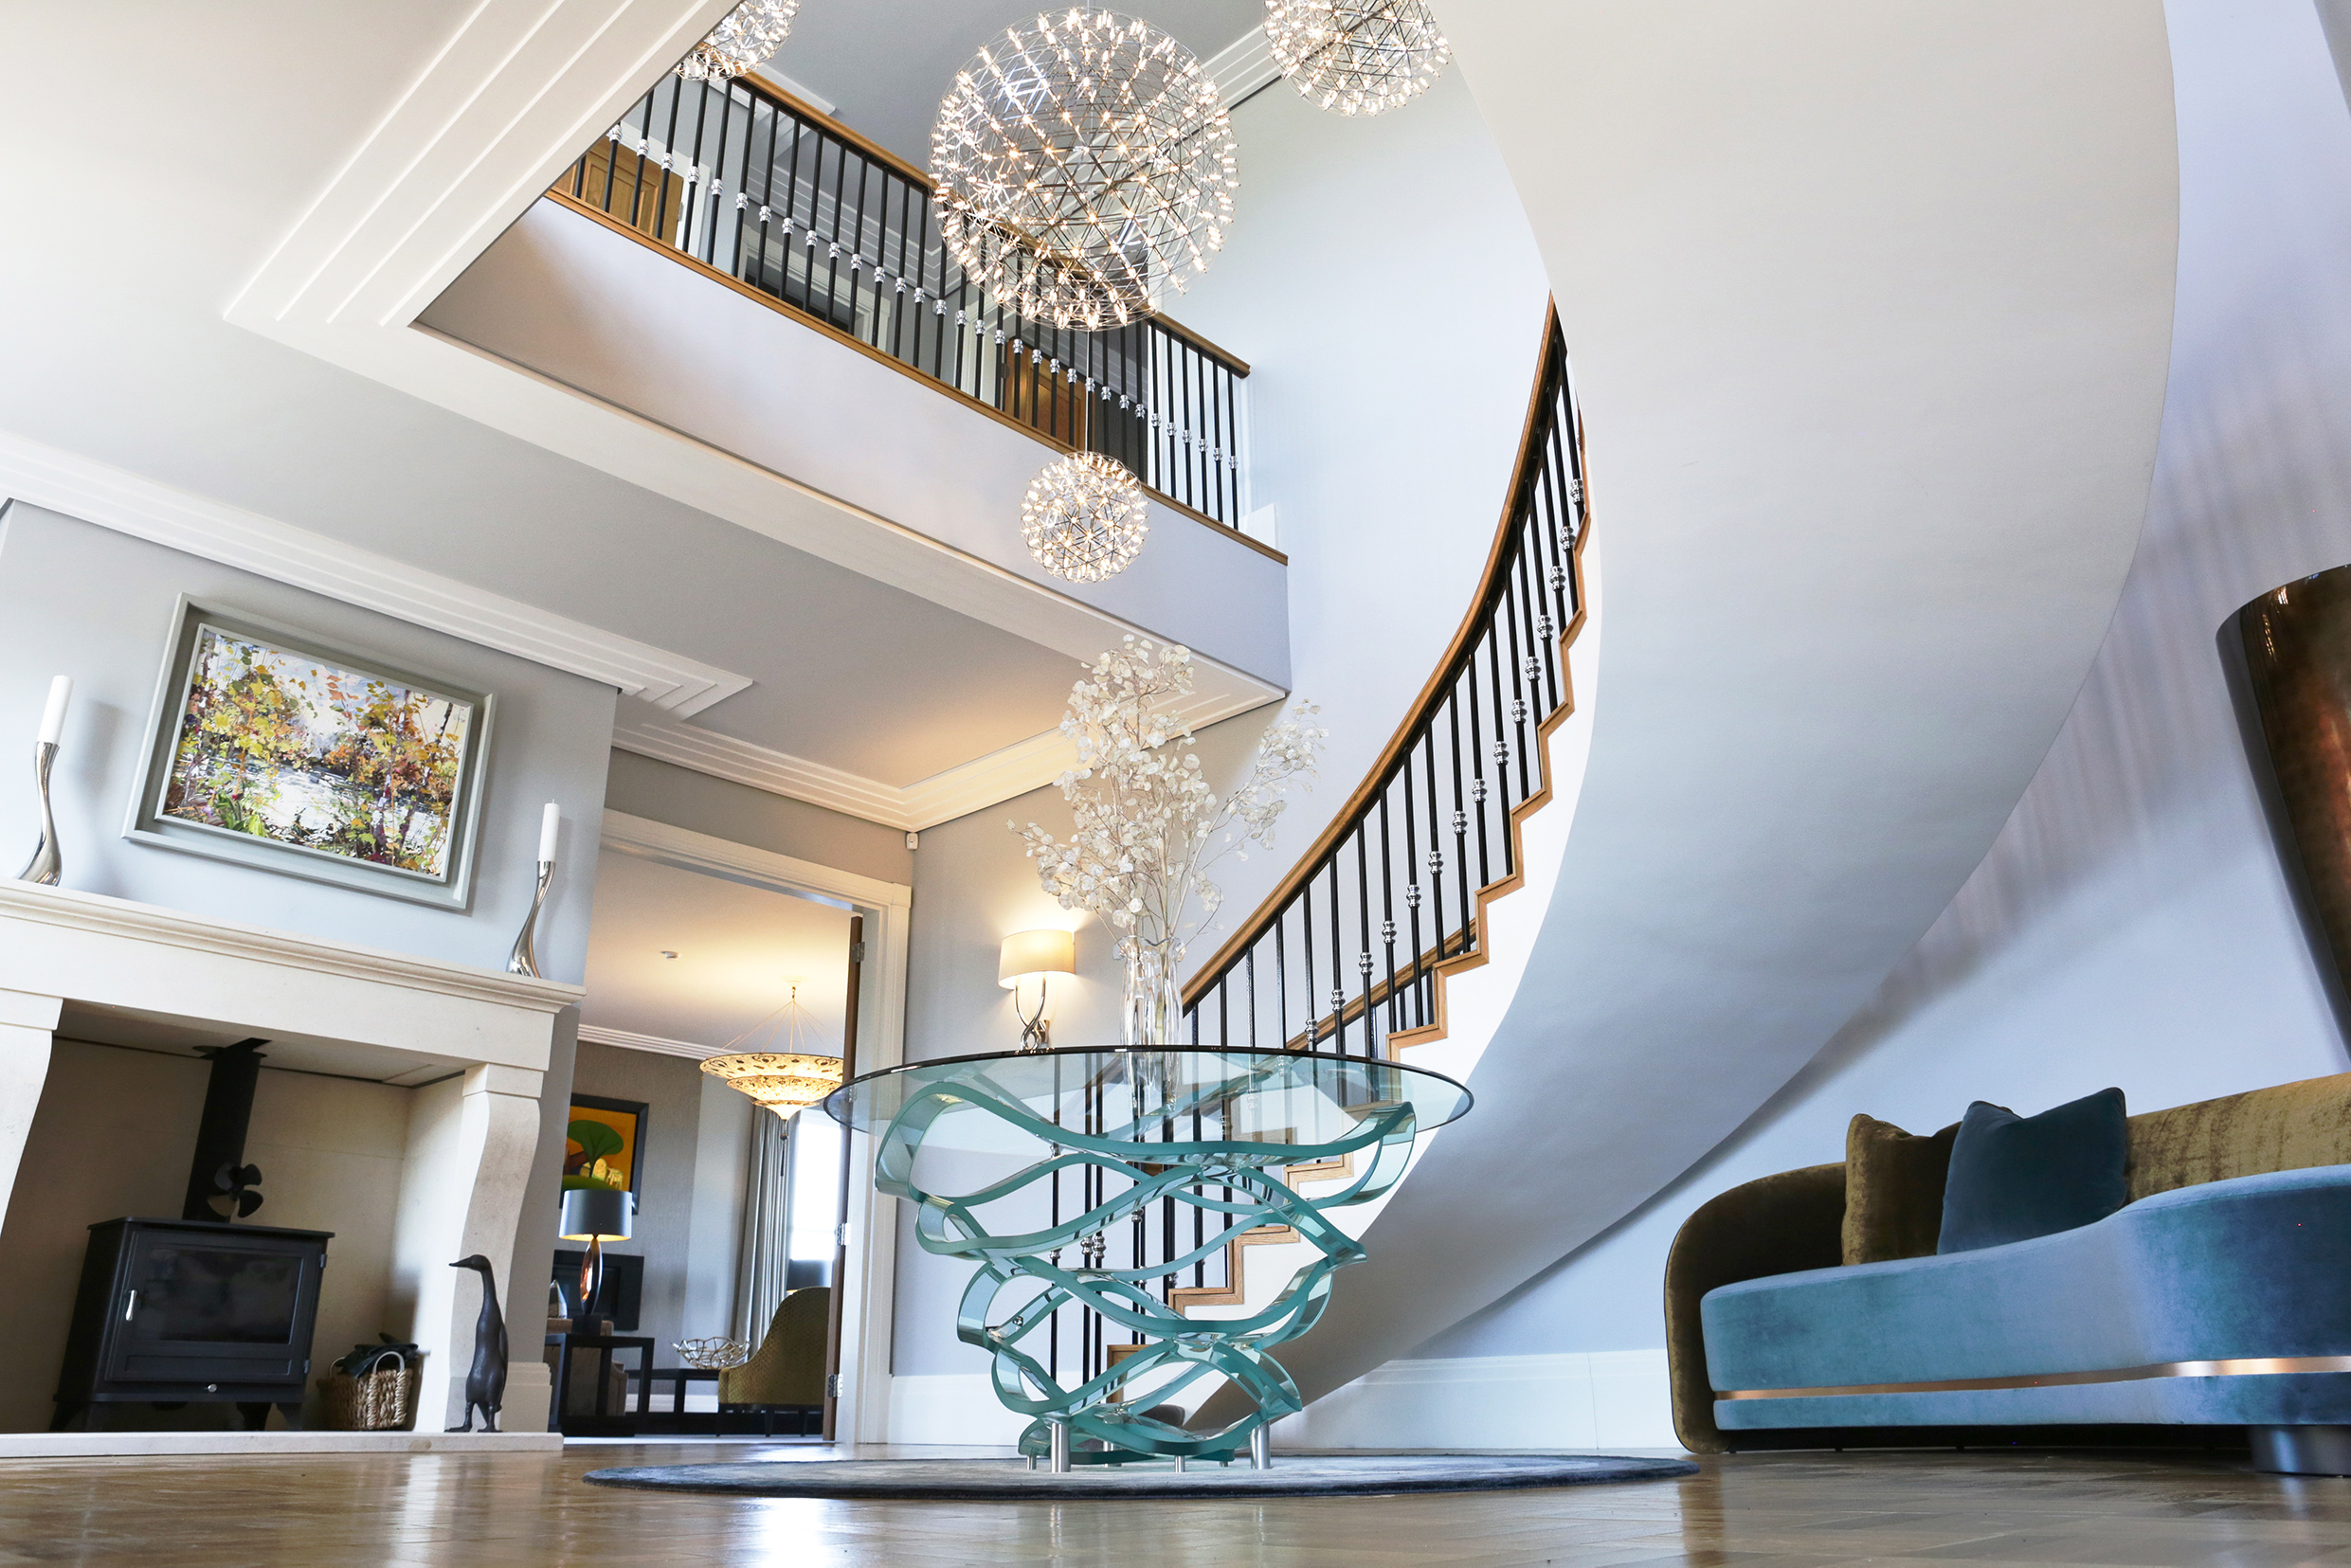 Peter Staunton Interior Design - Flint Hall Entrance